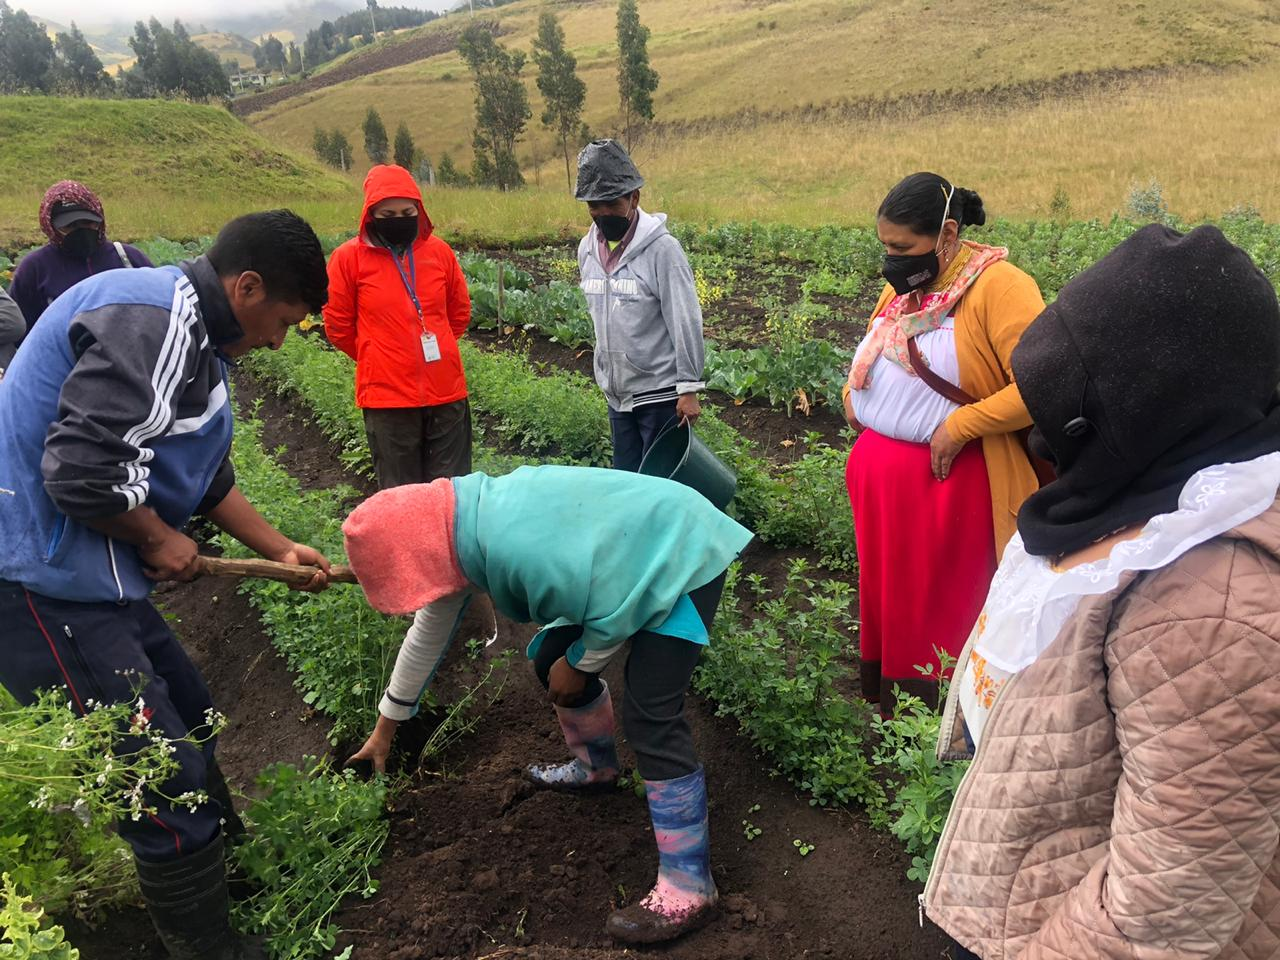 Community members in Ecuador work on an agriculture project during COVID